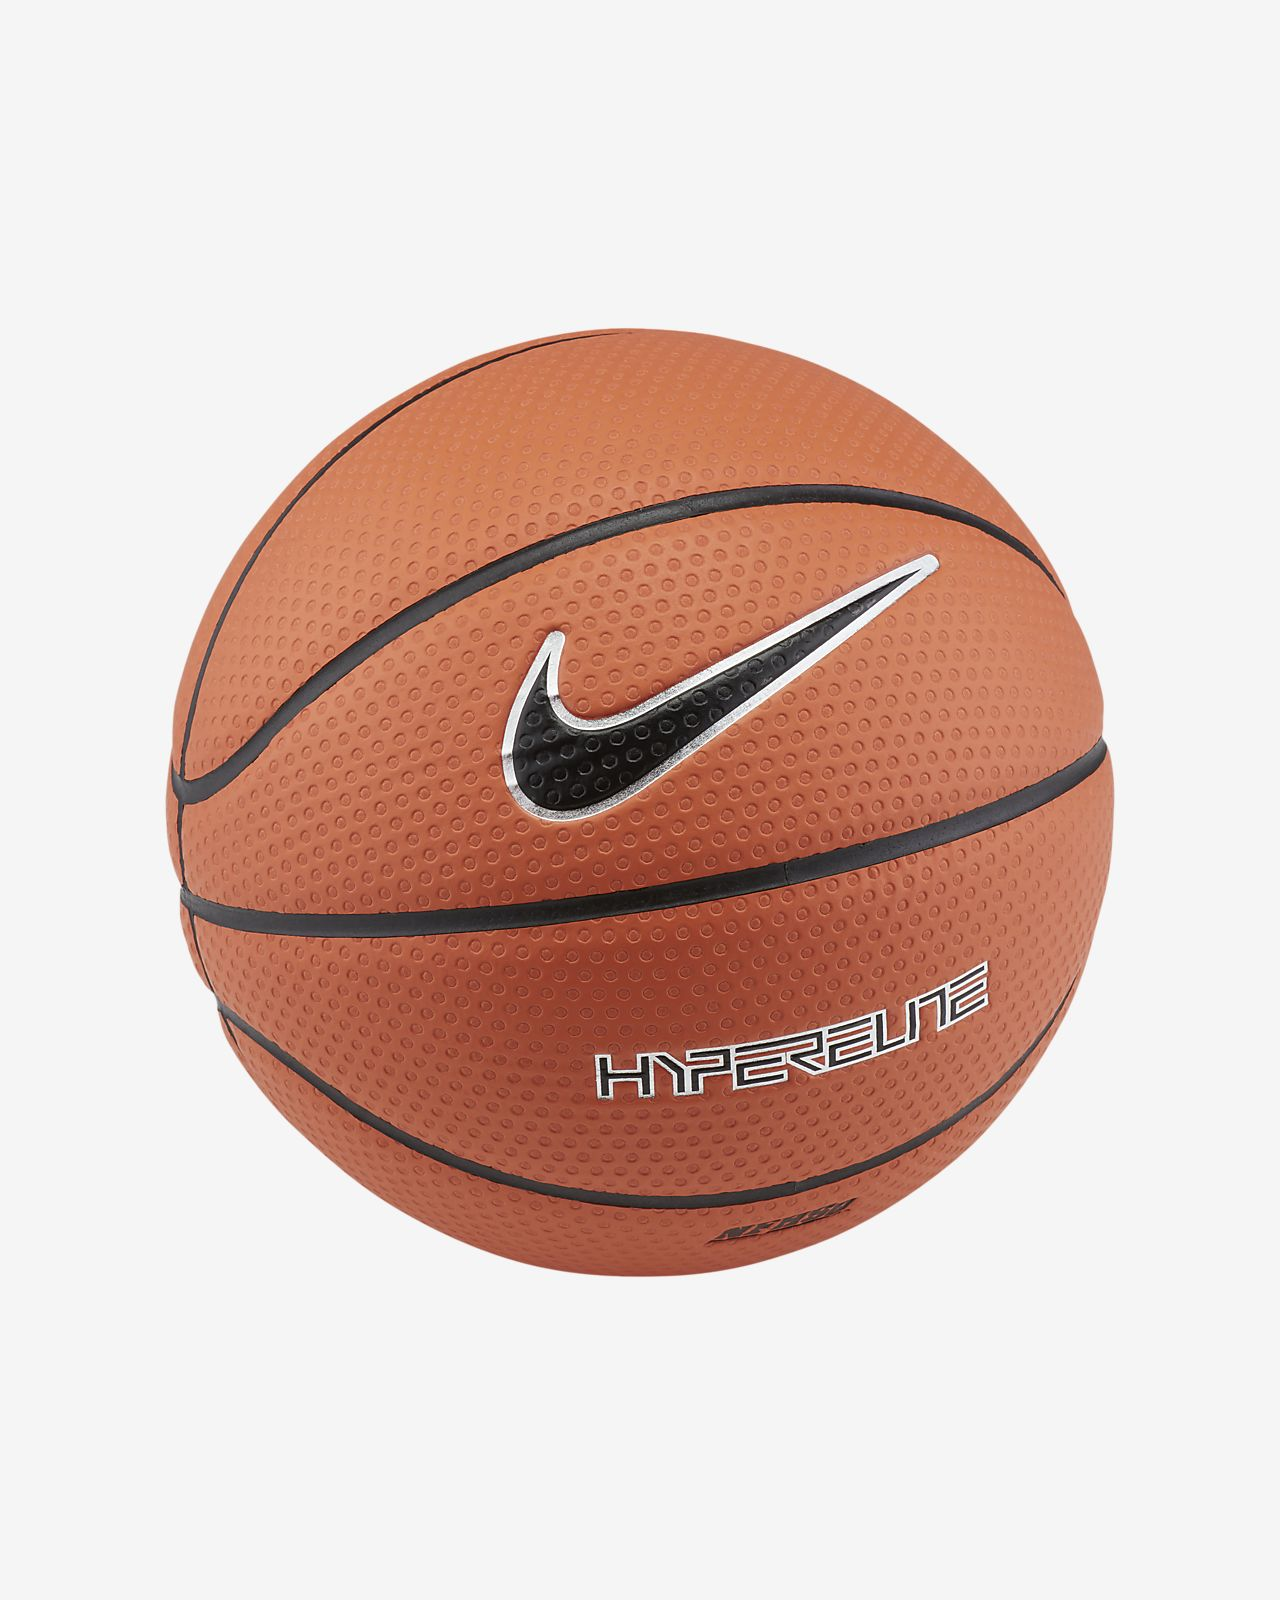 Nike Hyper Elite 8P Basketball (Size 6 and 7)